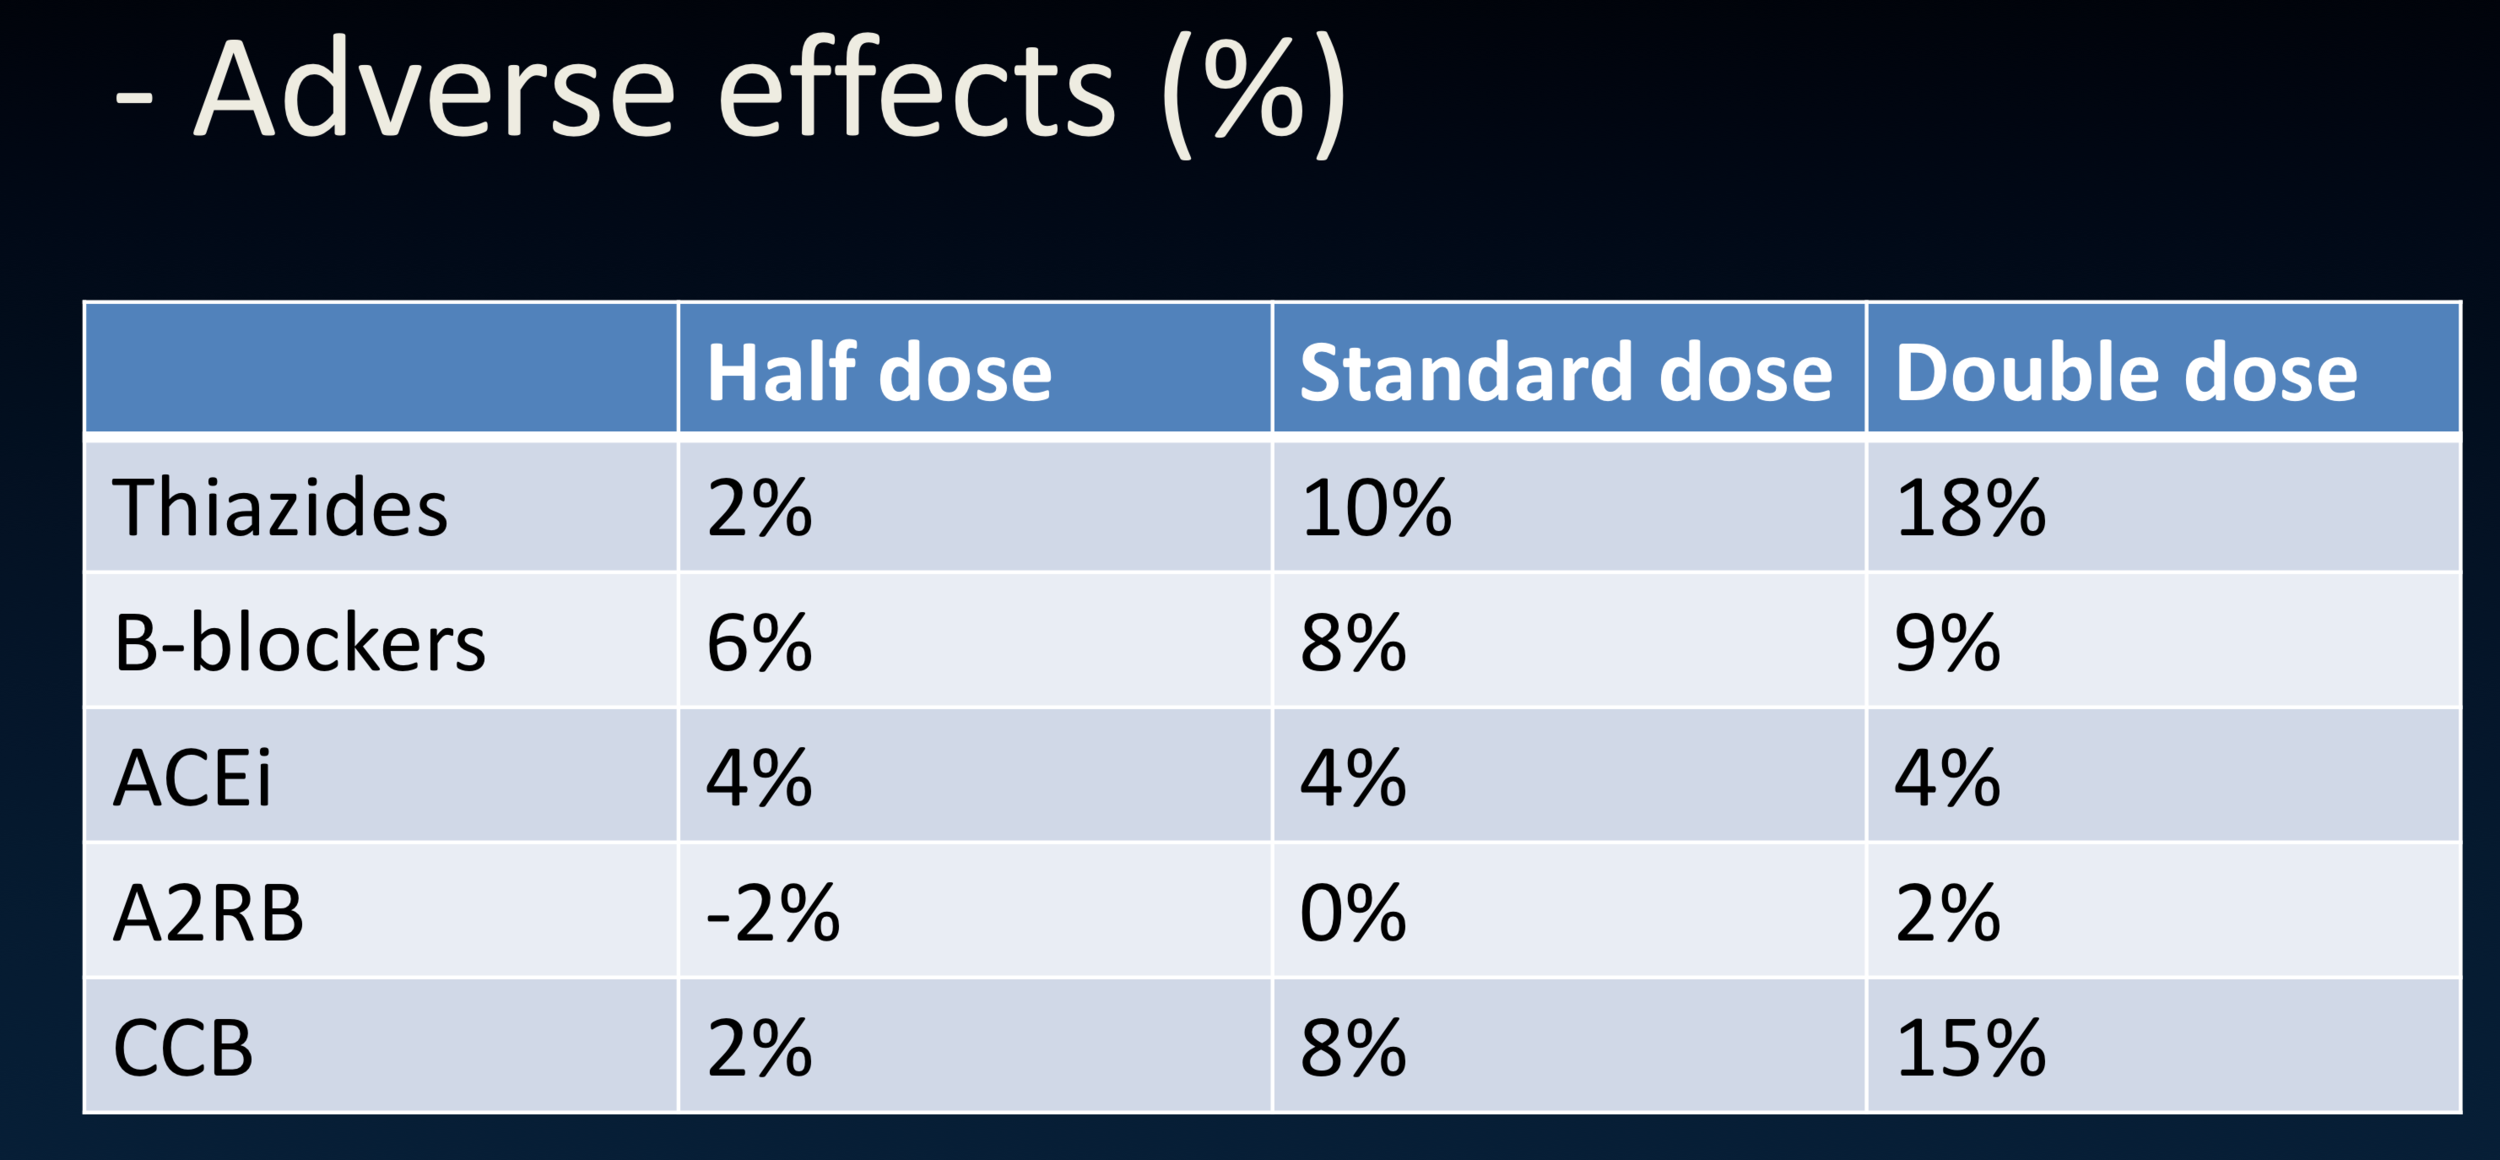 Incidence of adverse drug events with the corresponding anti-hypertensives by dose. % is expressed as %Rx - %placebo.